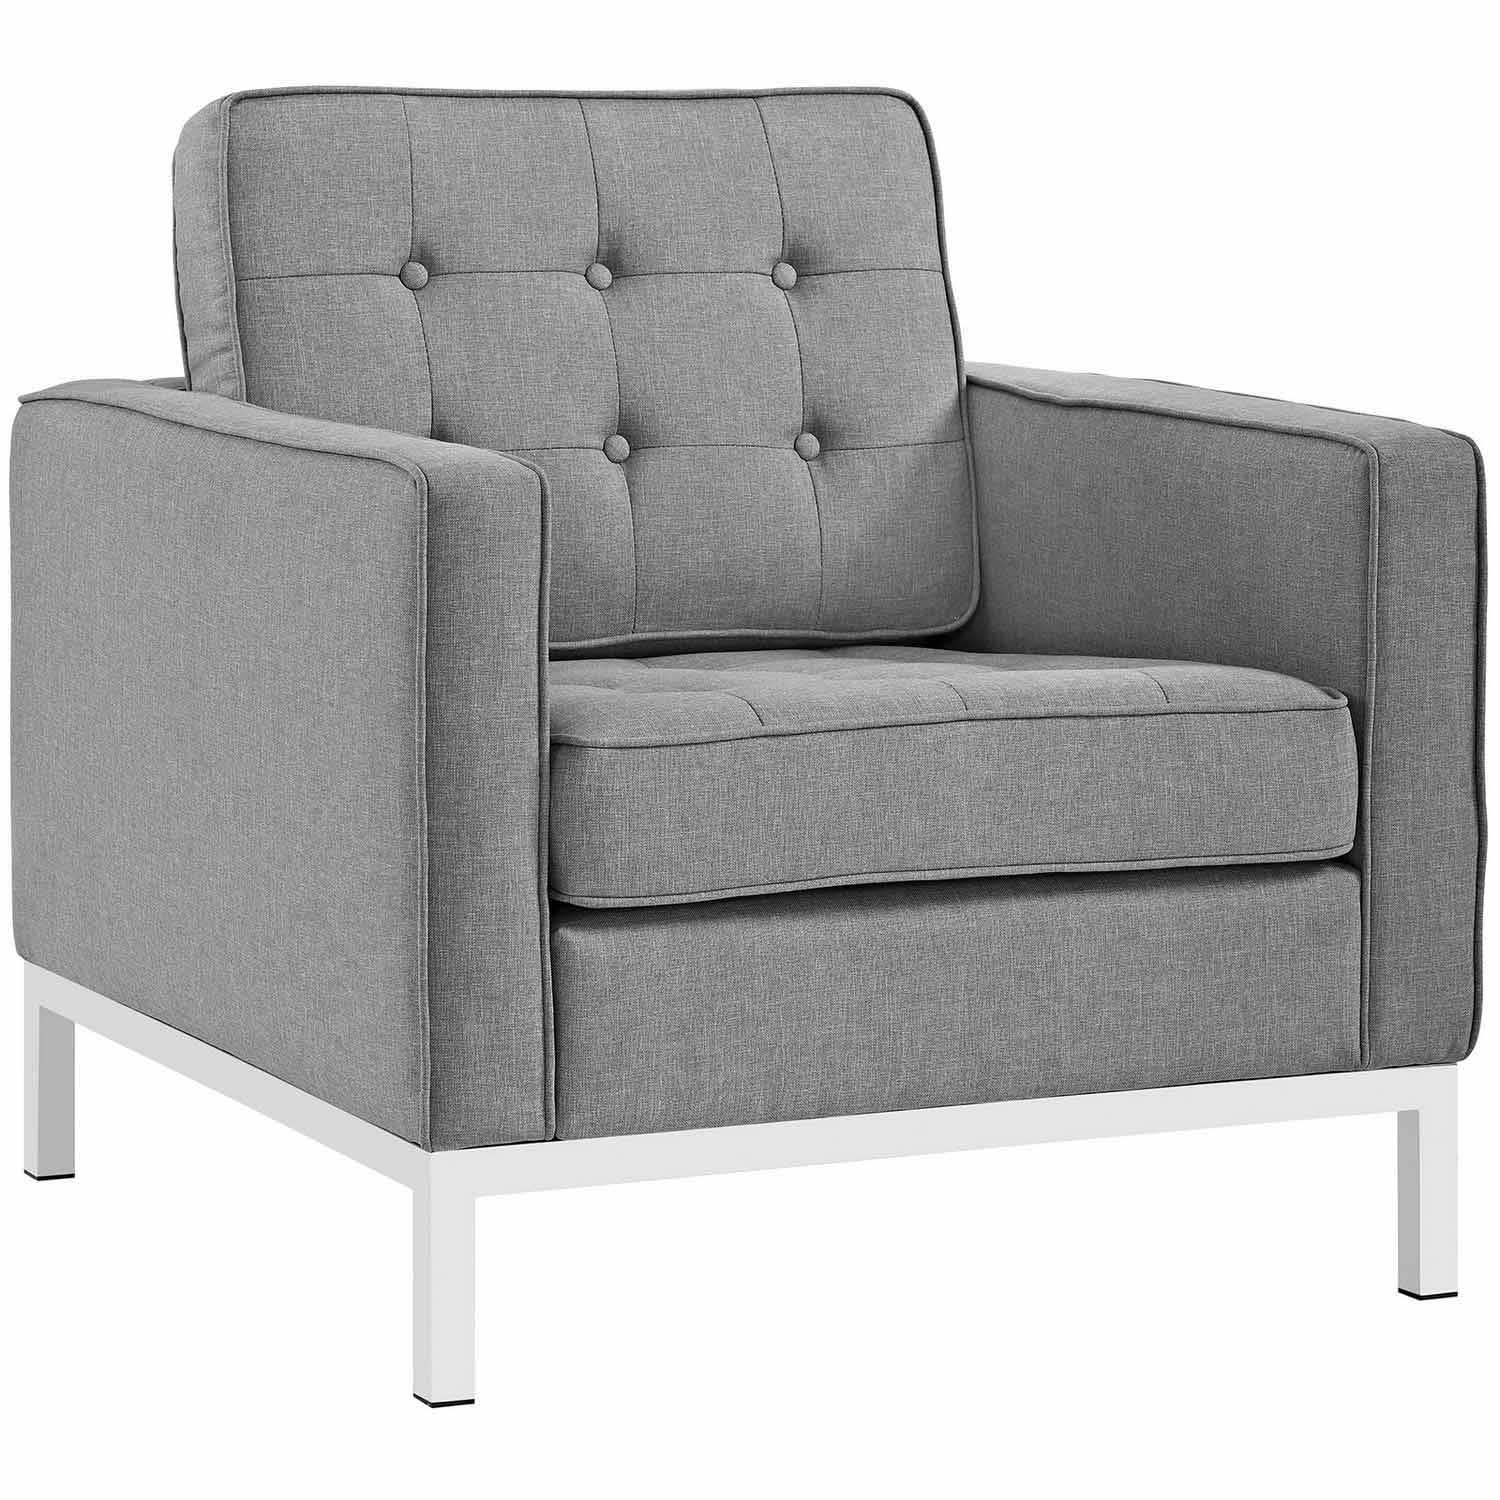 Modway Loft Fabric Arm Chair - Light Gray